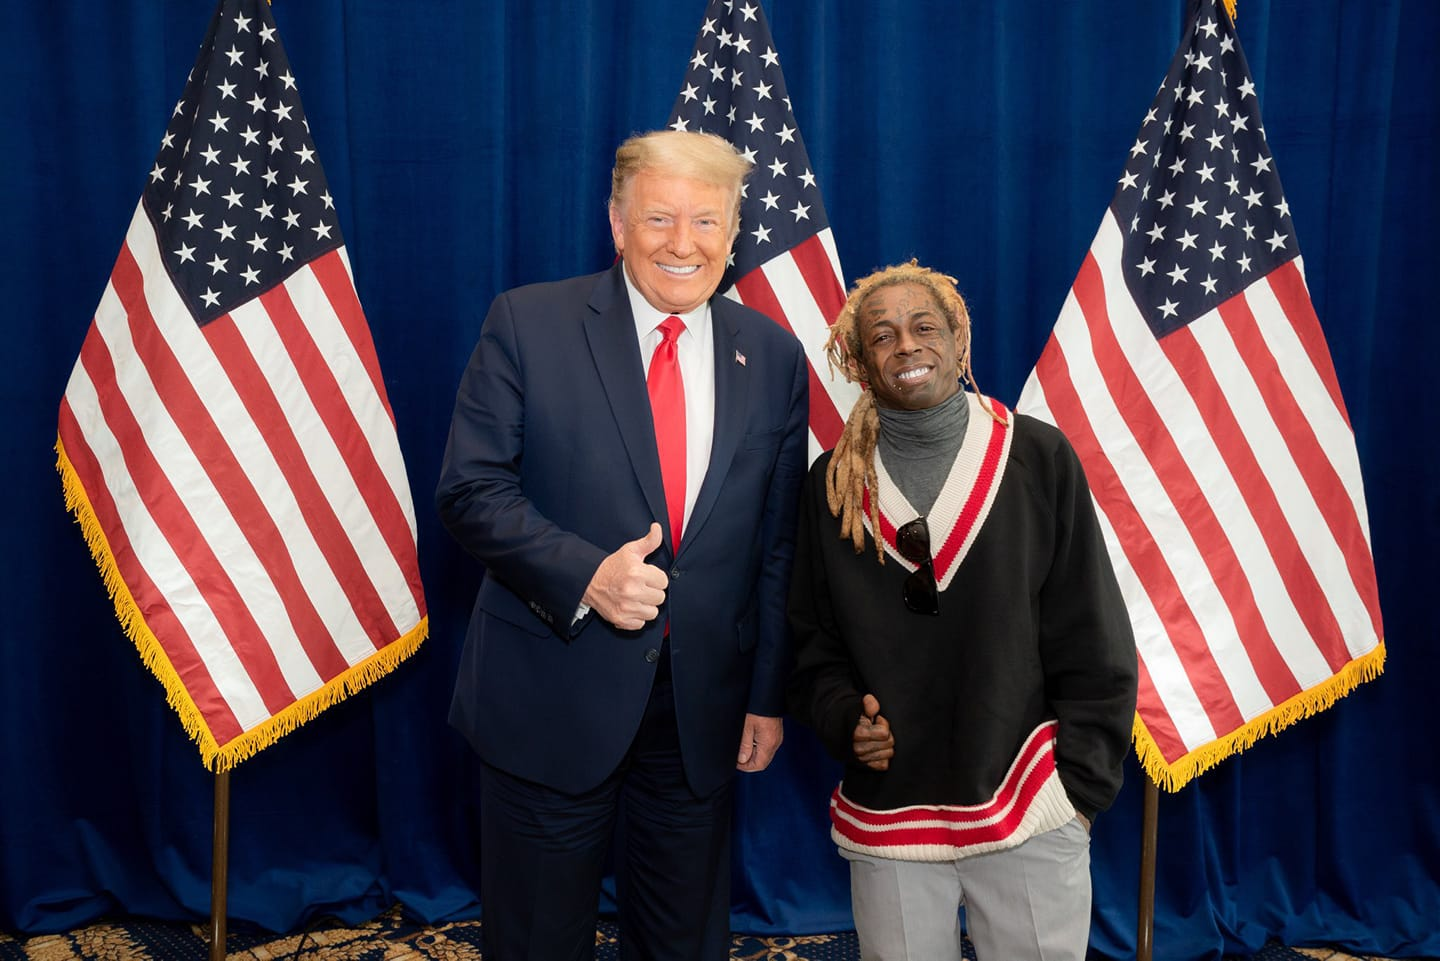 Lil Wayne and 45